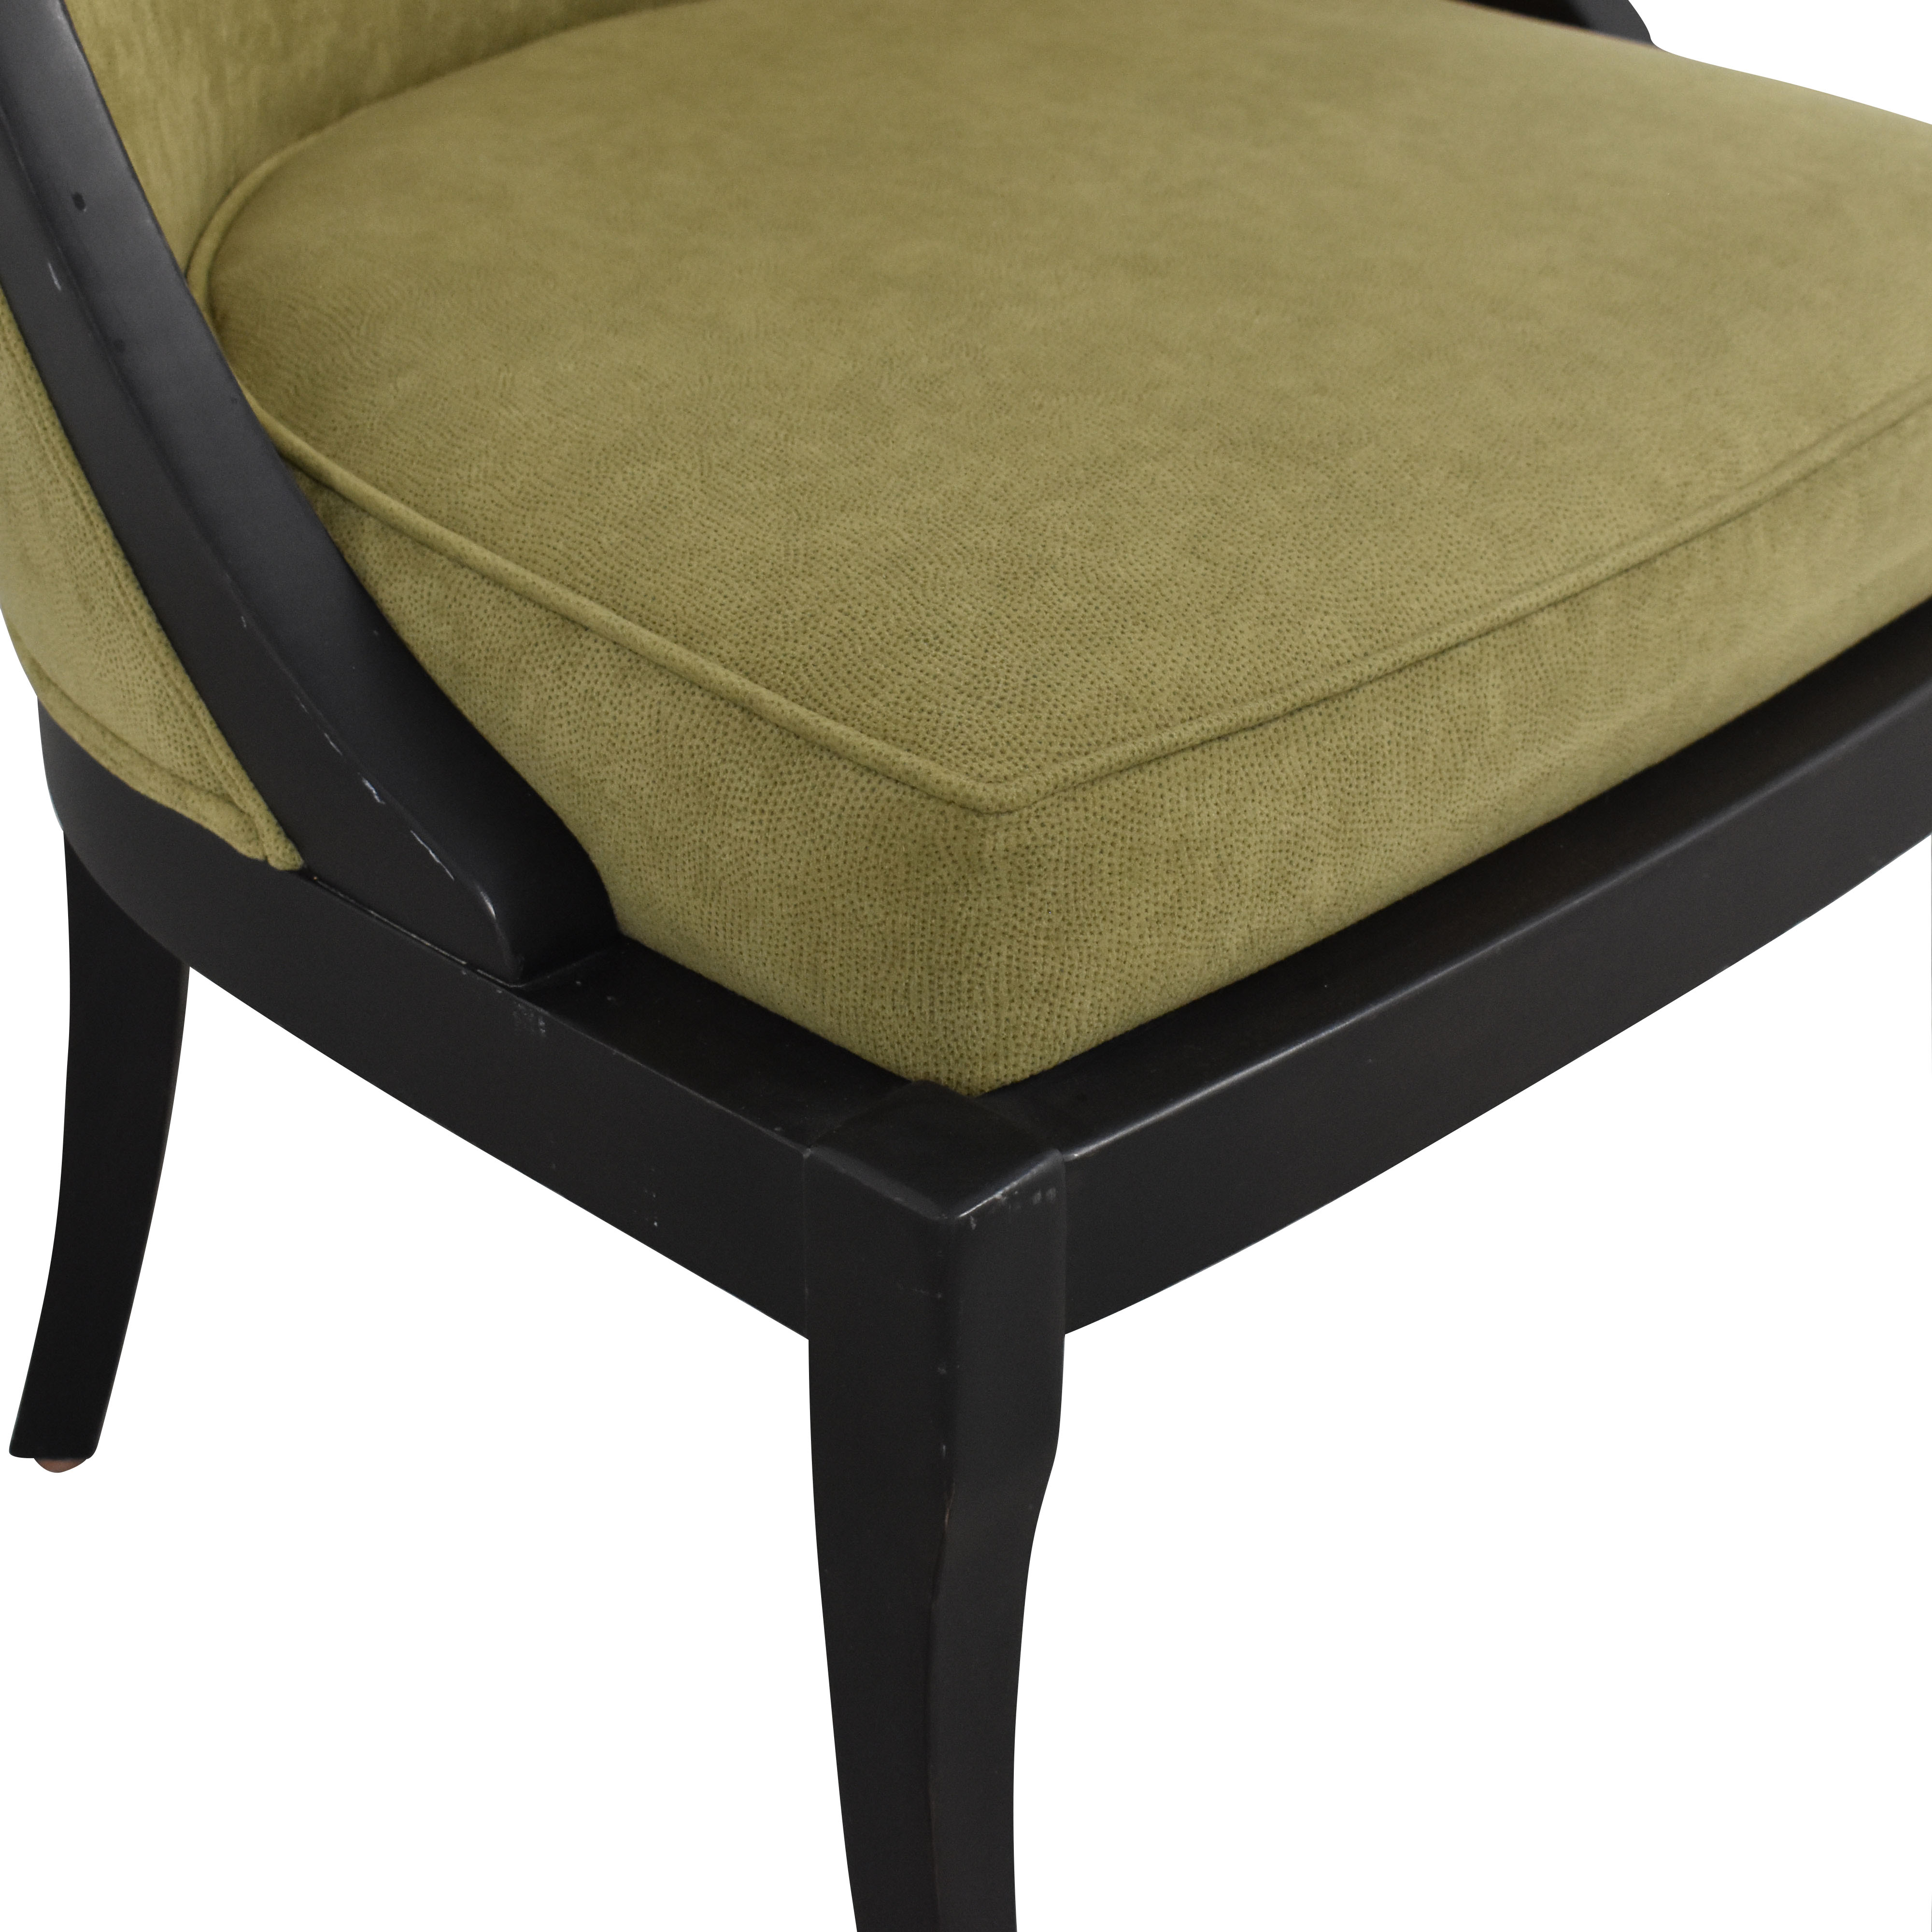 Ethan Allen Accent Chair / Accent Chairs